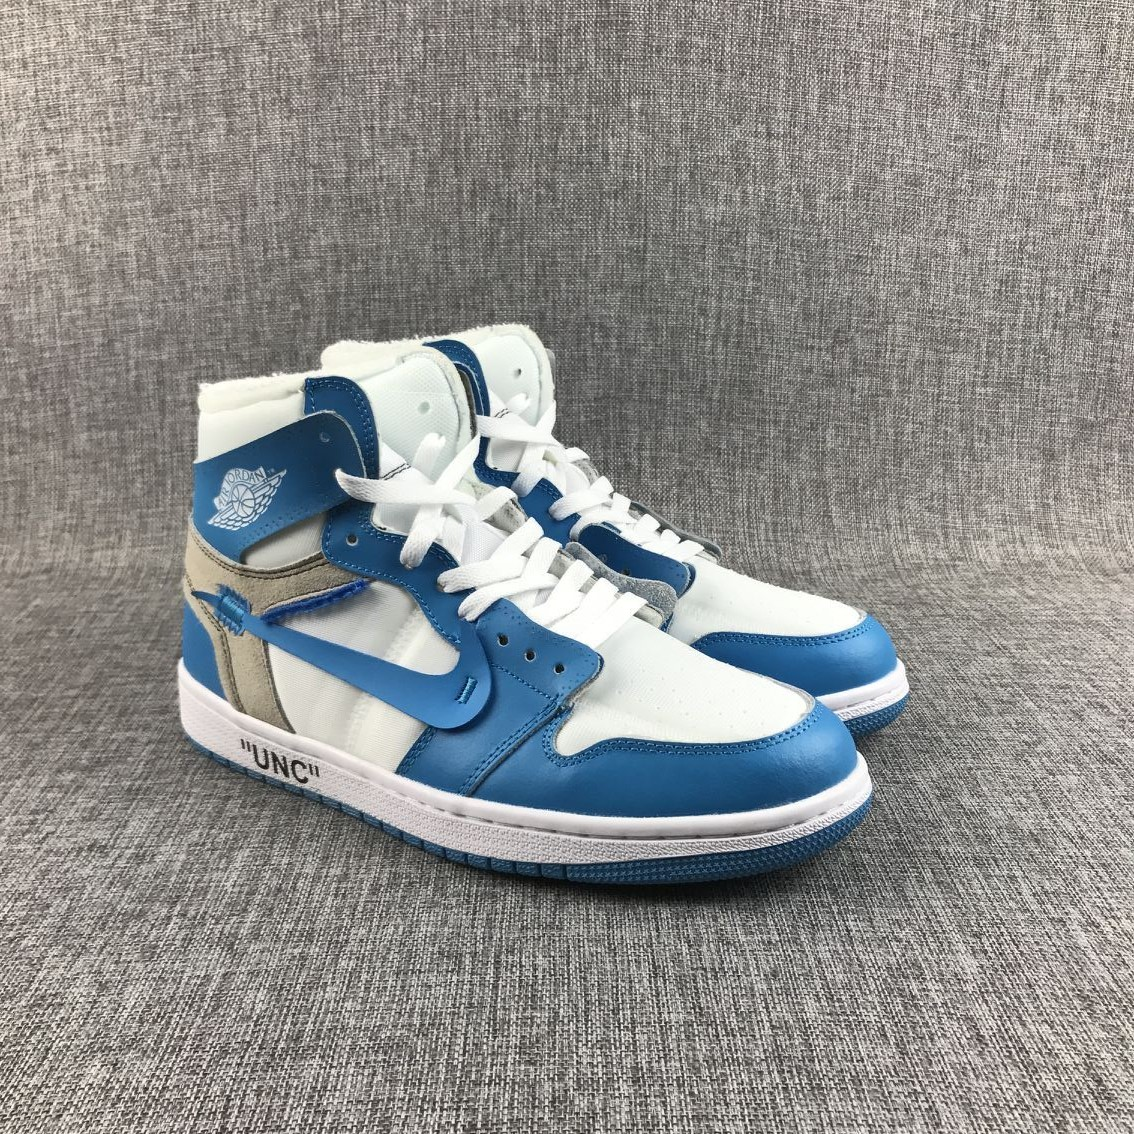 New Air Jordan 1 Blue White